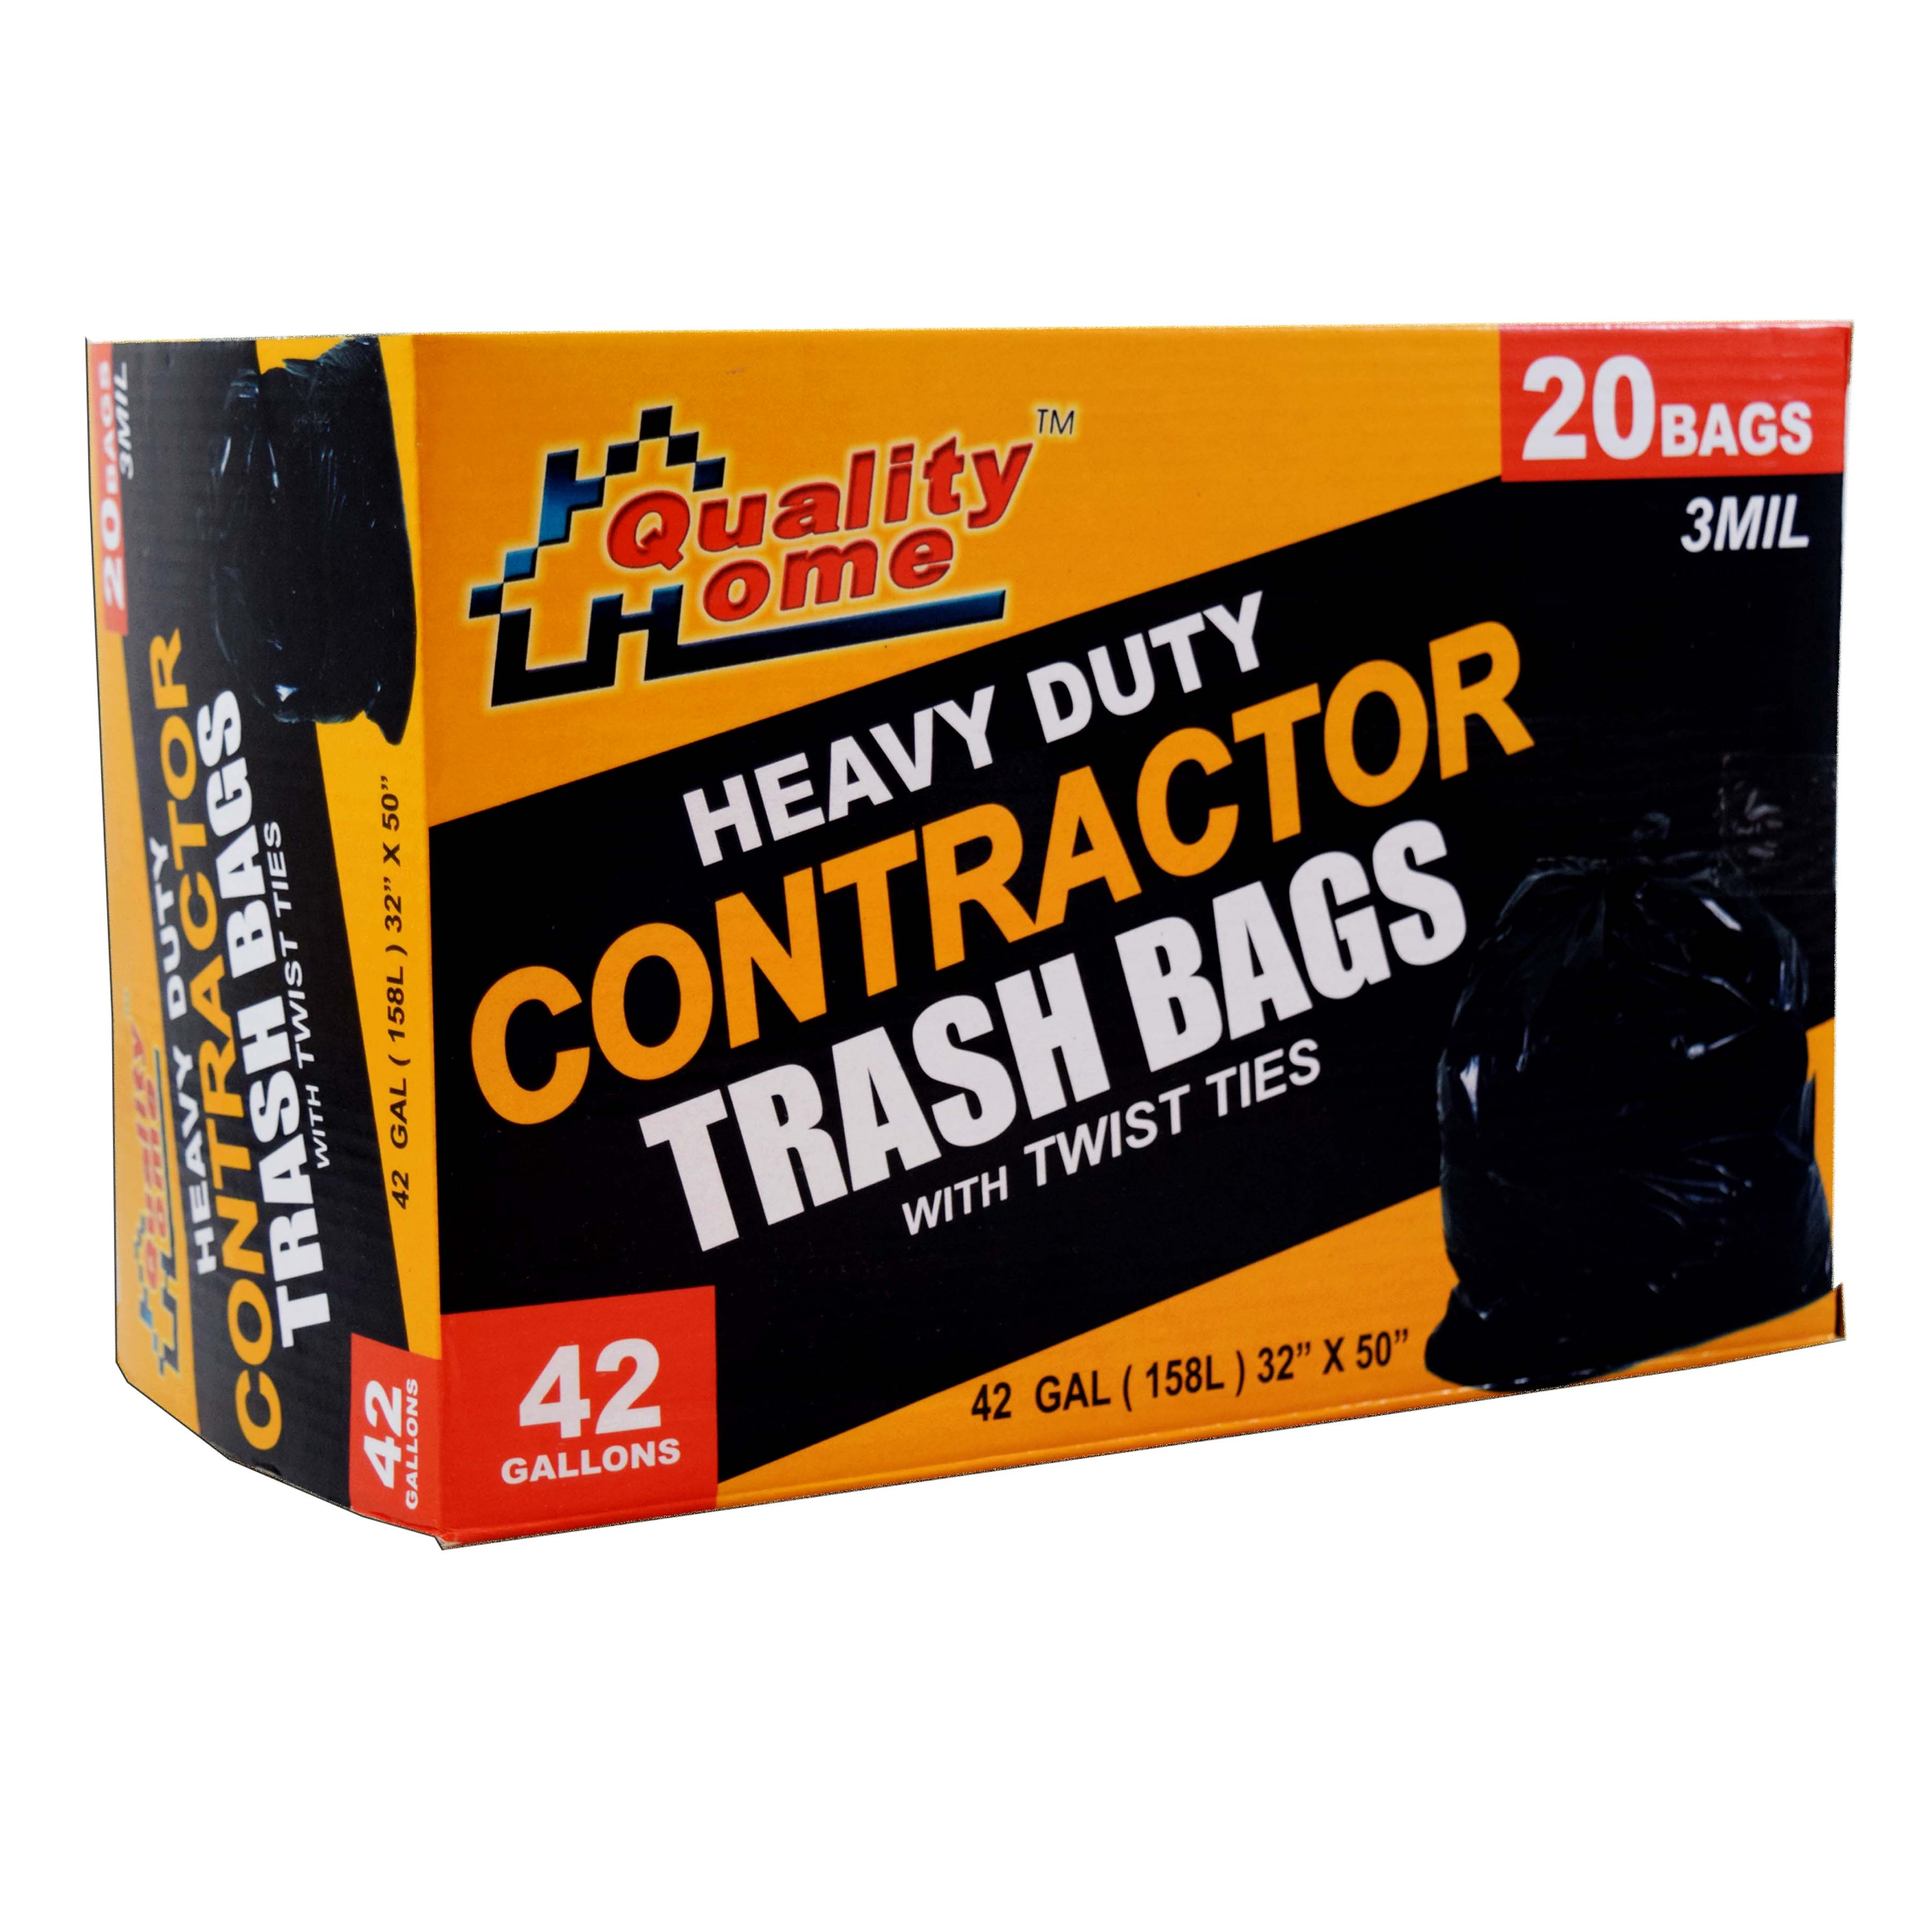 Contractor Bag 42G 20CT In Box